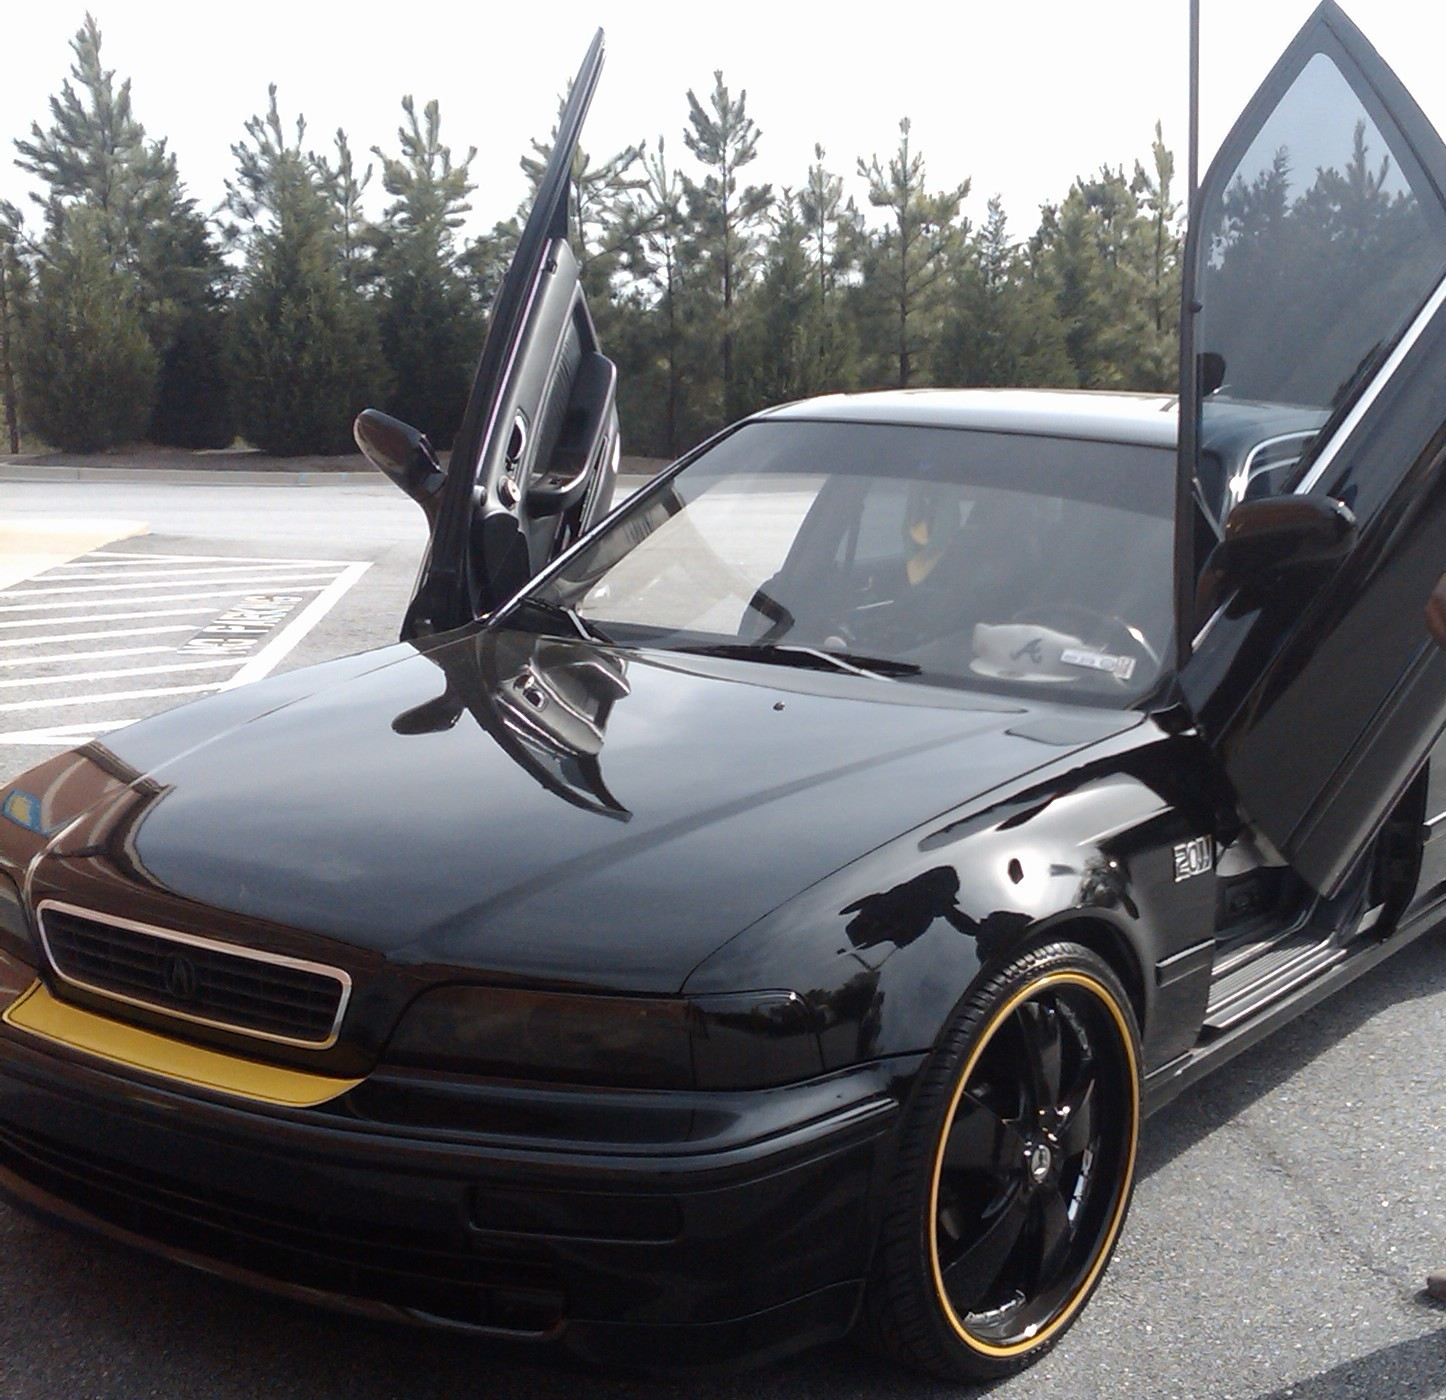 Terrence84 1994 Acura Legend Specs, Photos, Modification